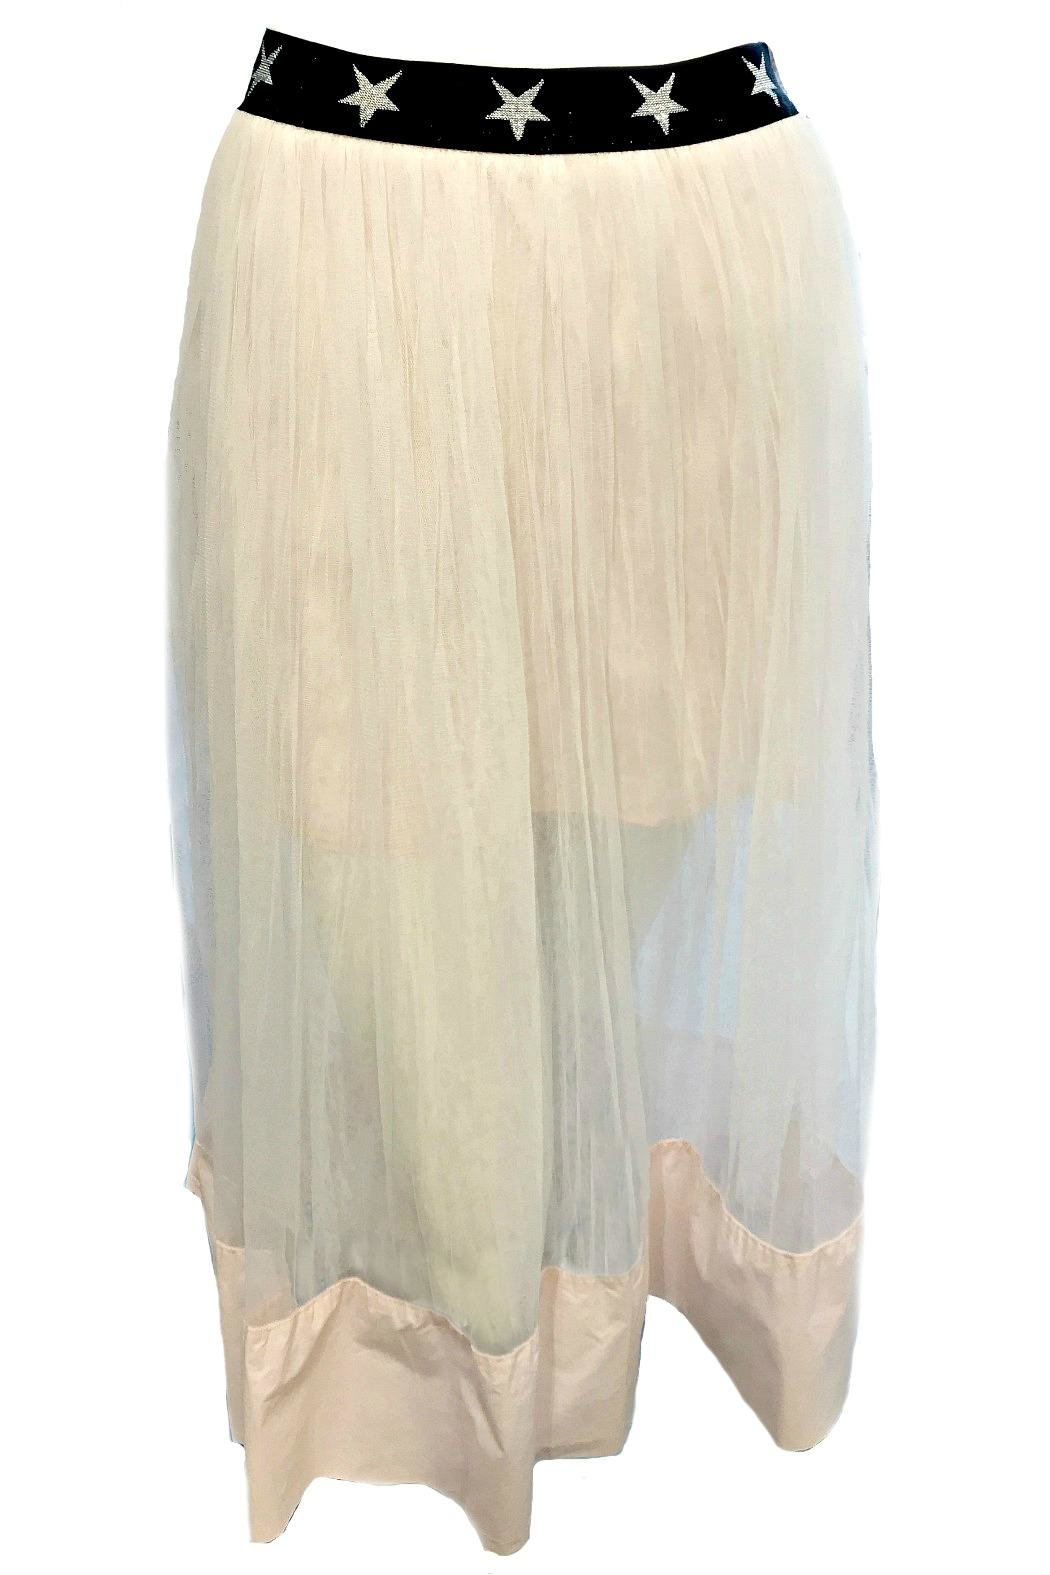 Maryley Pink Tulle Skirt - Main Image